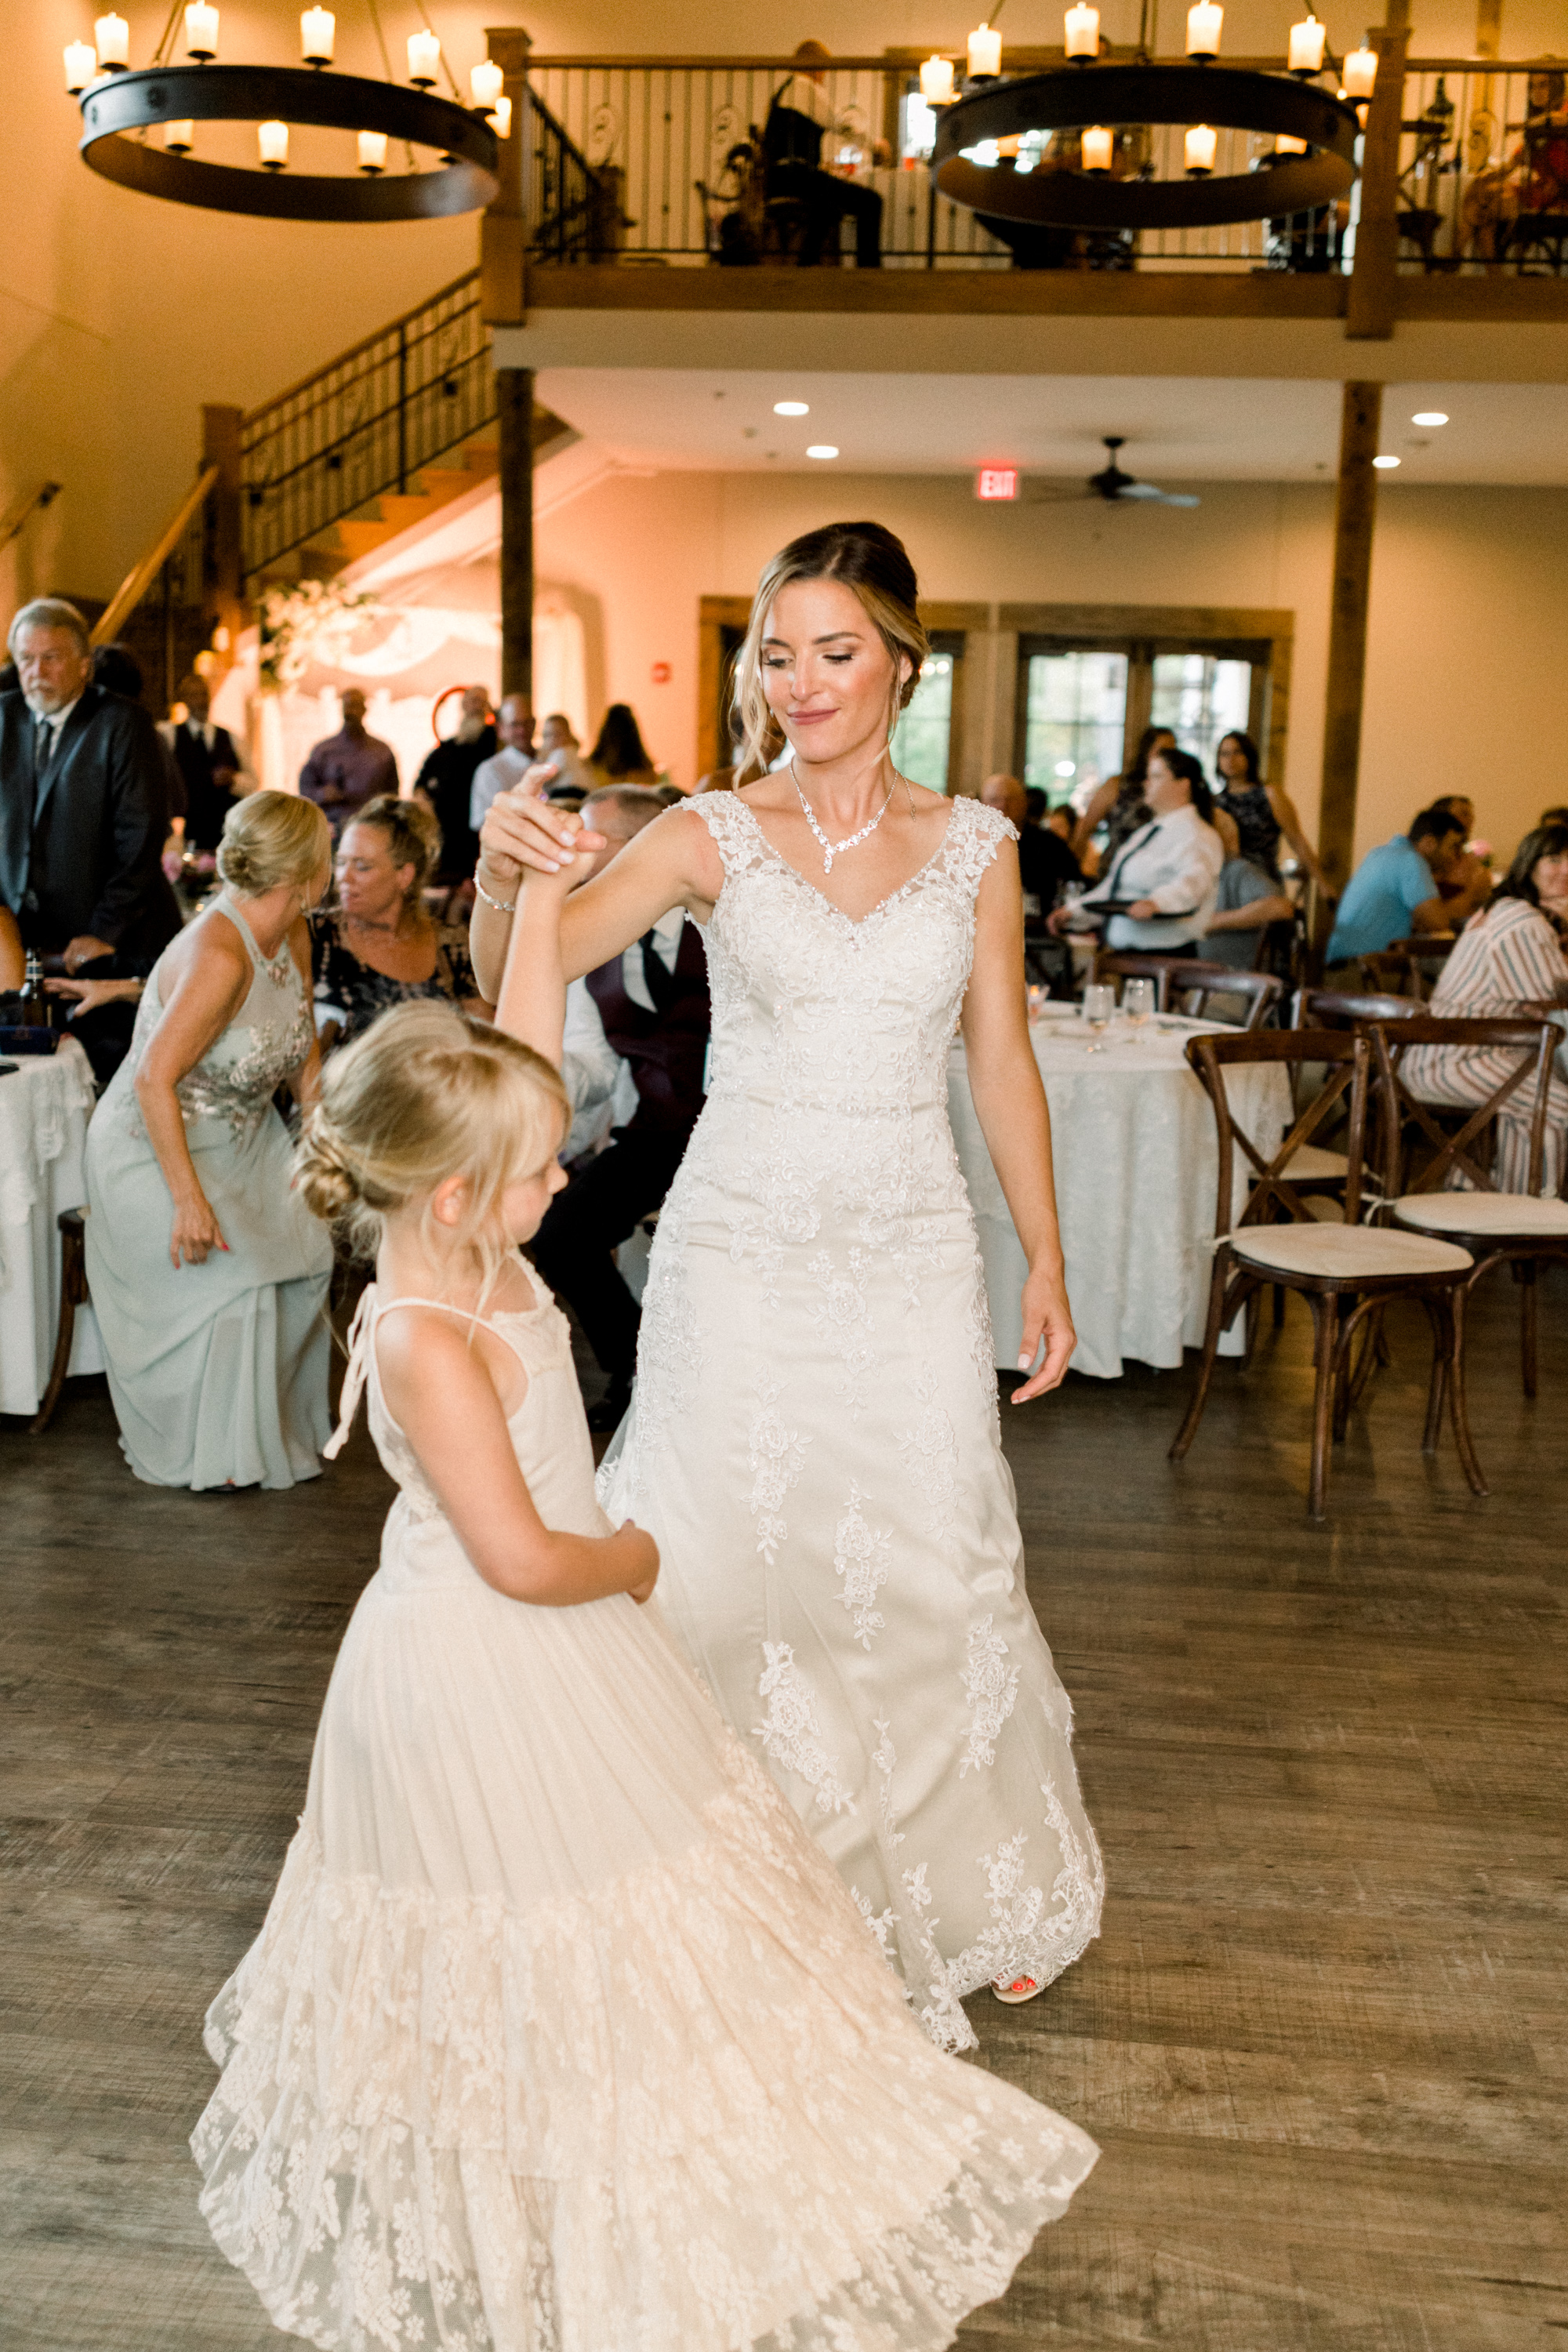 Lauren + Dallas 7-20-19 (1020 of 1118).jpg